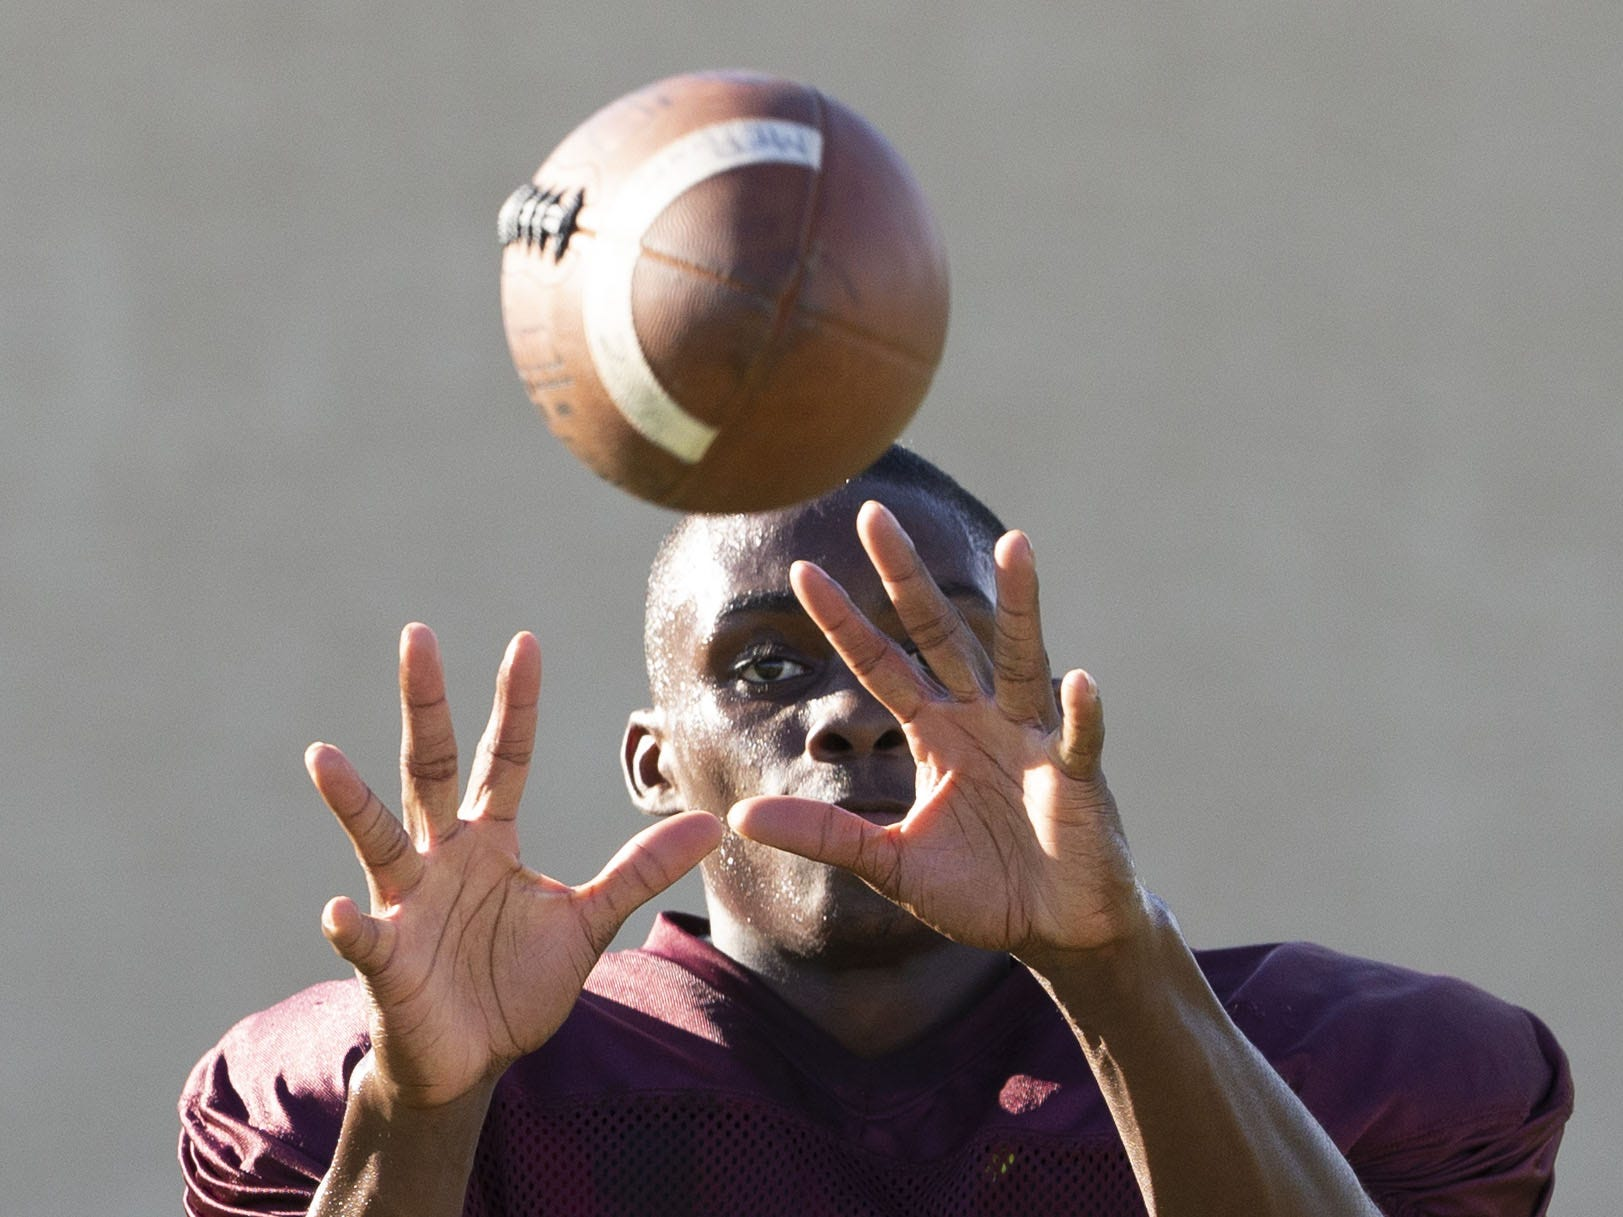 Mountain Pointe's wide receiver Dominique Davis runs a drill during practice in Phoenix on October 3, 2018.